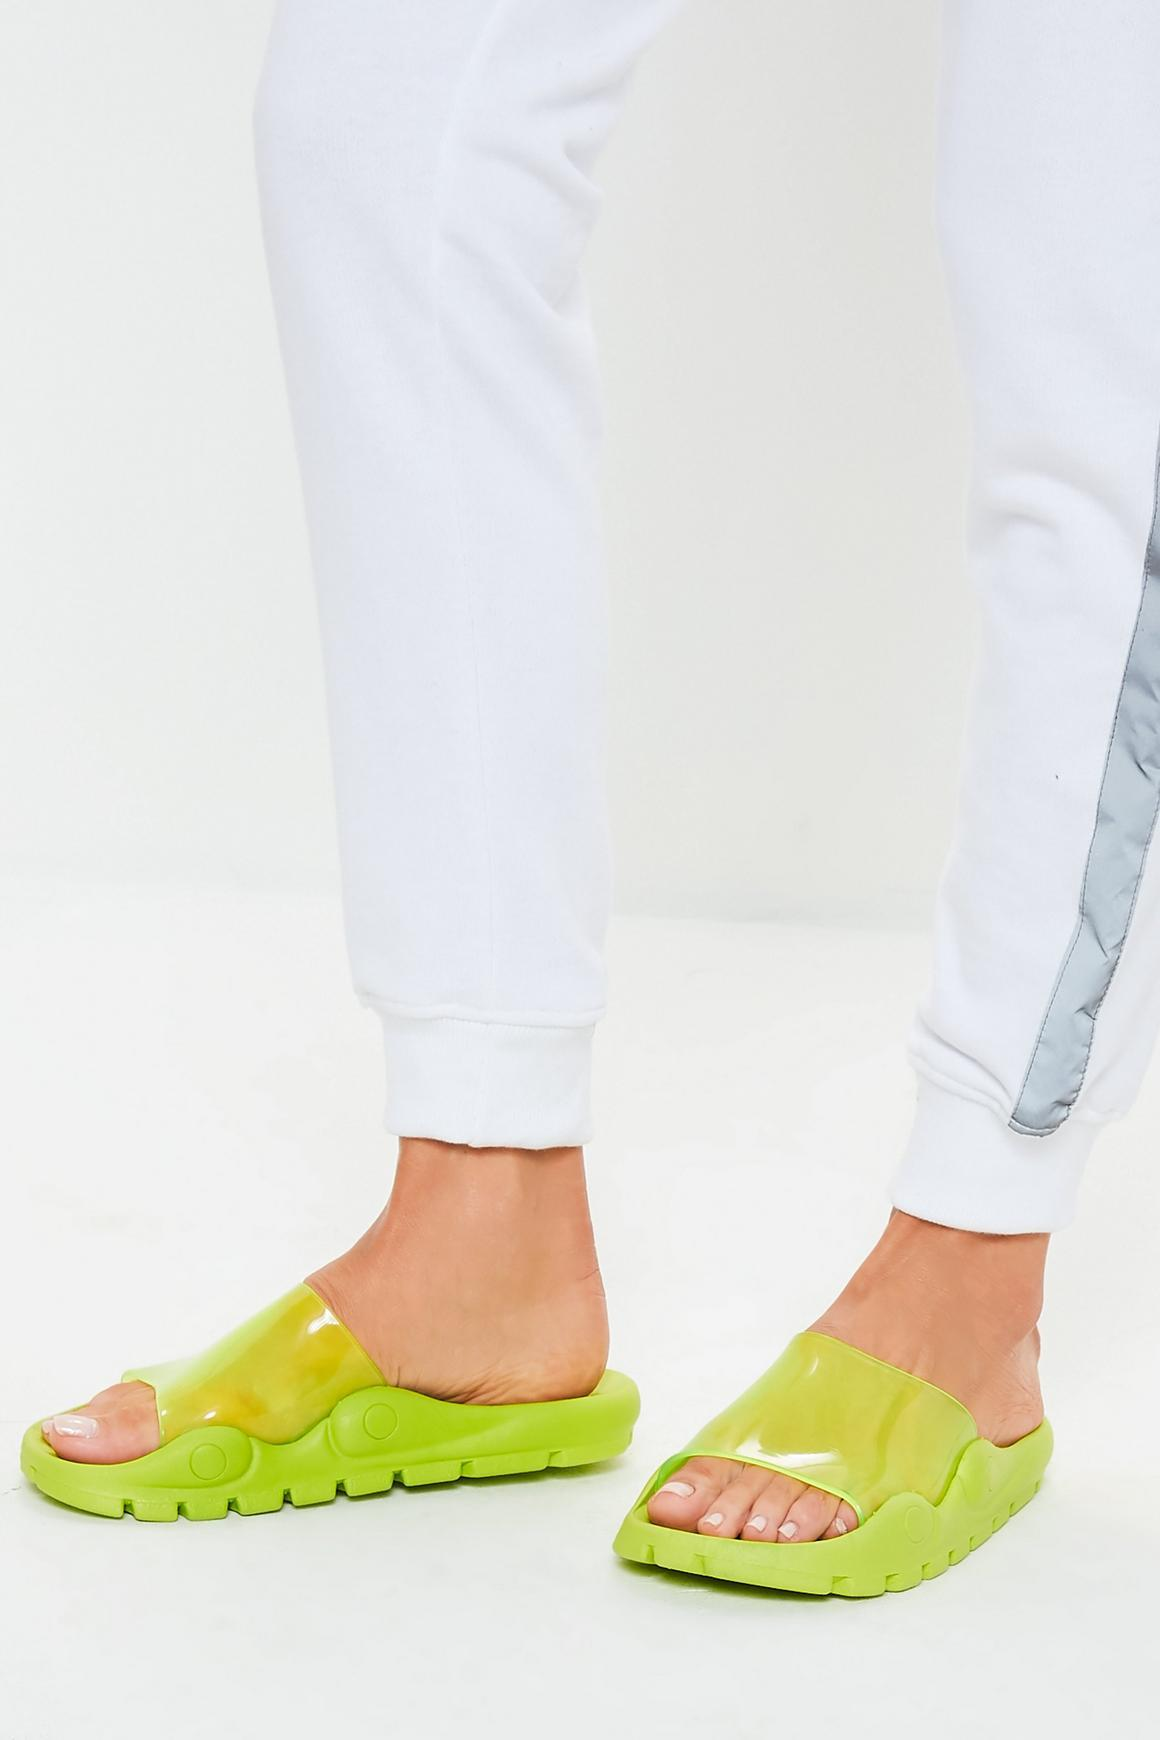 missguided. Sandalias flúor de Miss Guided